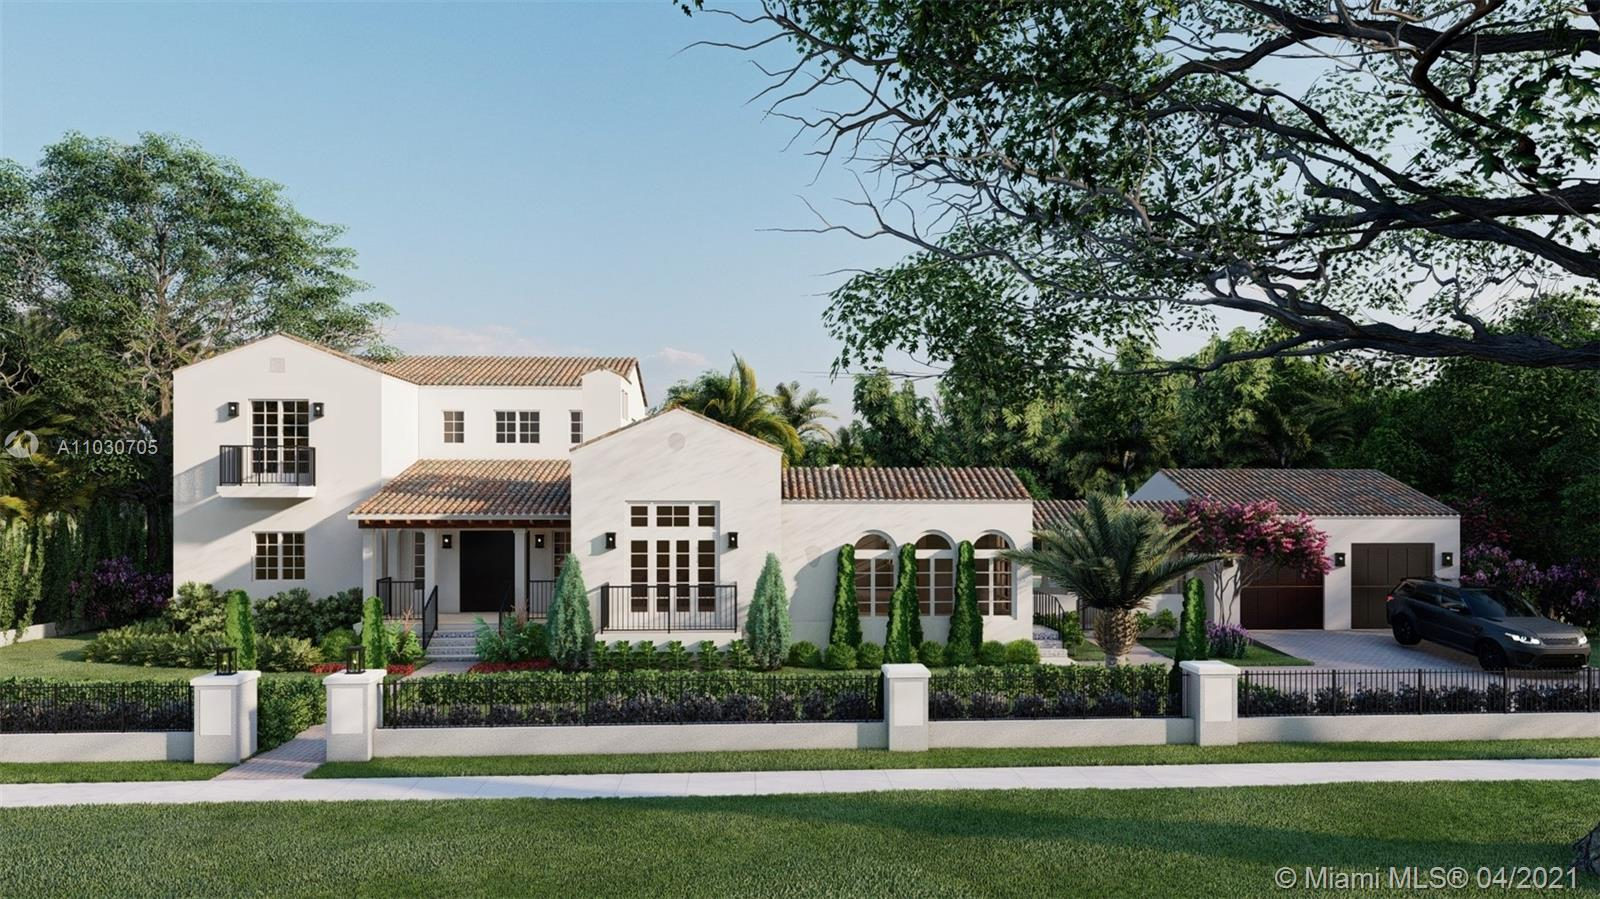 Custom built new construction in the heart of Coral Gables. Walk to the Historic Biltmore Hotel, Venetian pool & Miracle Mile. This breathtaking home sits on 3 lots totaling 18,750 sqft, a rarity in the Gables. The house features an expansive kitchen w/Wolf range, Miele built-in coffee maker & wine storage. This new construction is unique in many ways,  among them is a Historic Den with Italian imported tiles & stone encased gas fireplace. Master Suite closet bigger than most bedrooms. Master bath features a soaking tub, custom shower jets, integrated double sinks, walnut cabinetry and Toto toilet.  Venture outside to a covered terrace and summer kitchen while overlooking your pool and spa. Too many features to list.  Estimated completion July 2021.